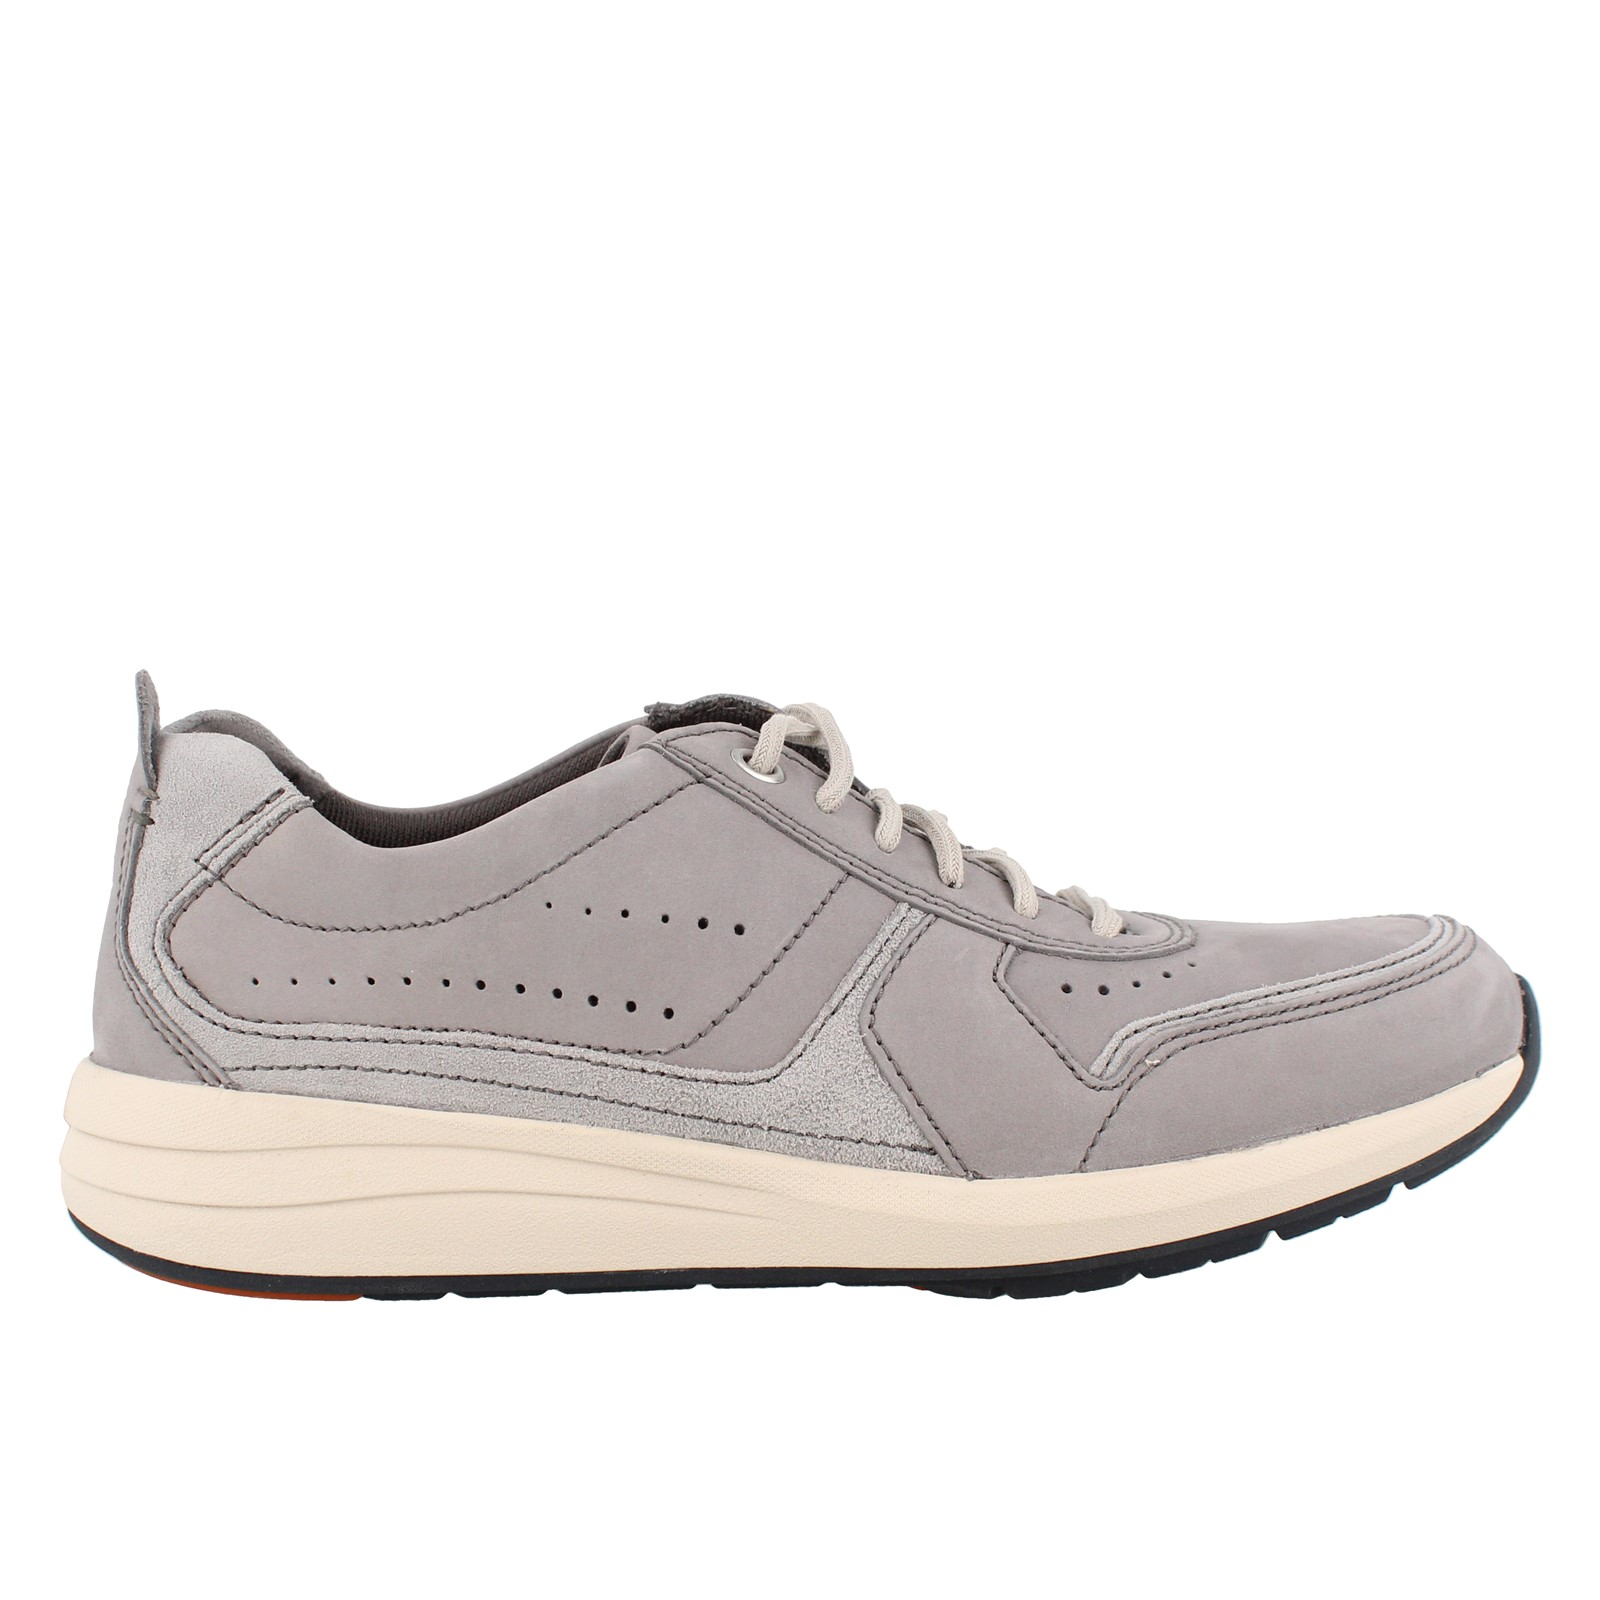 Men's Clarks, Uncoast Form casual walking shoes